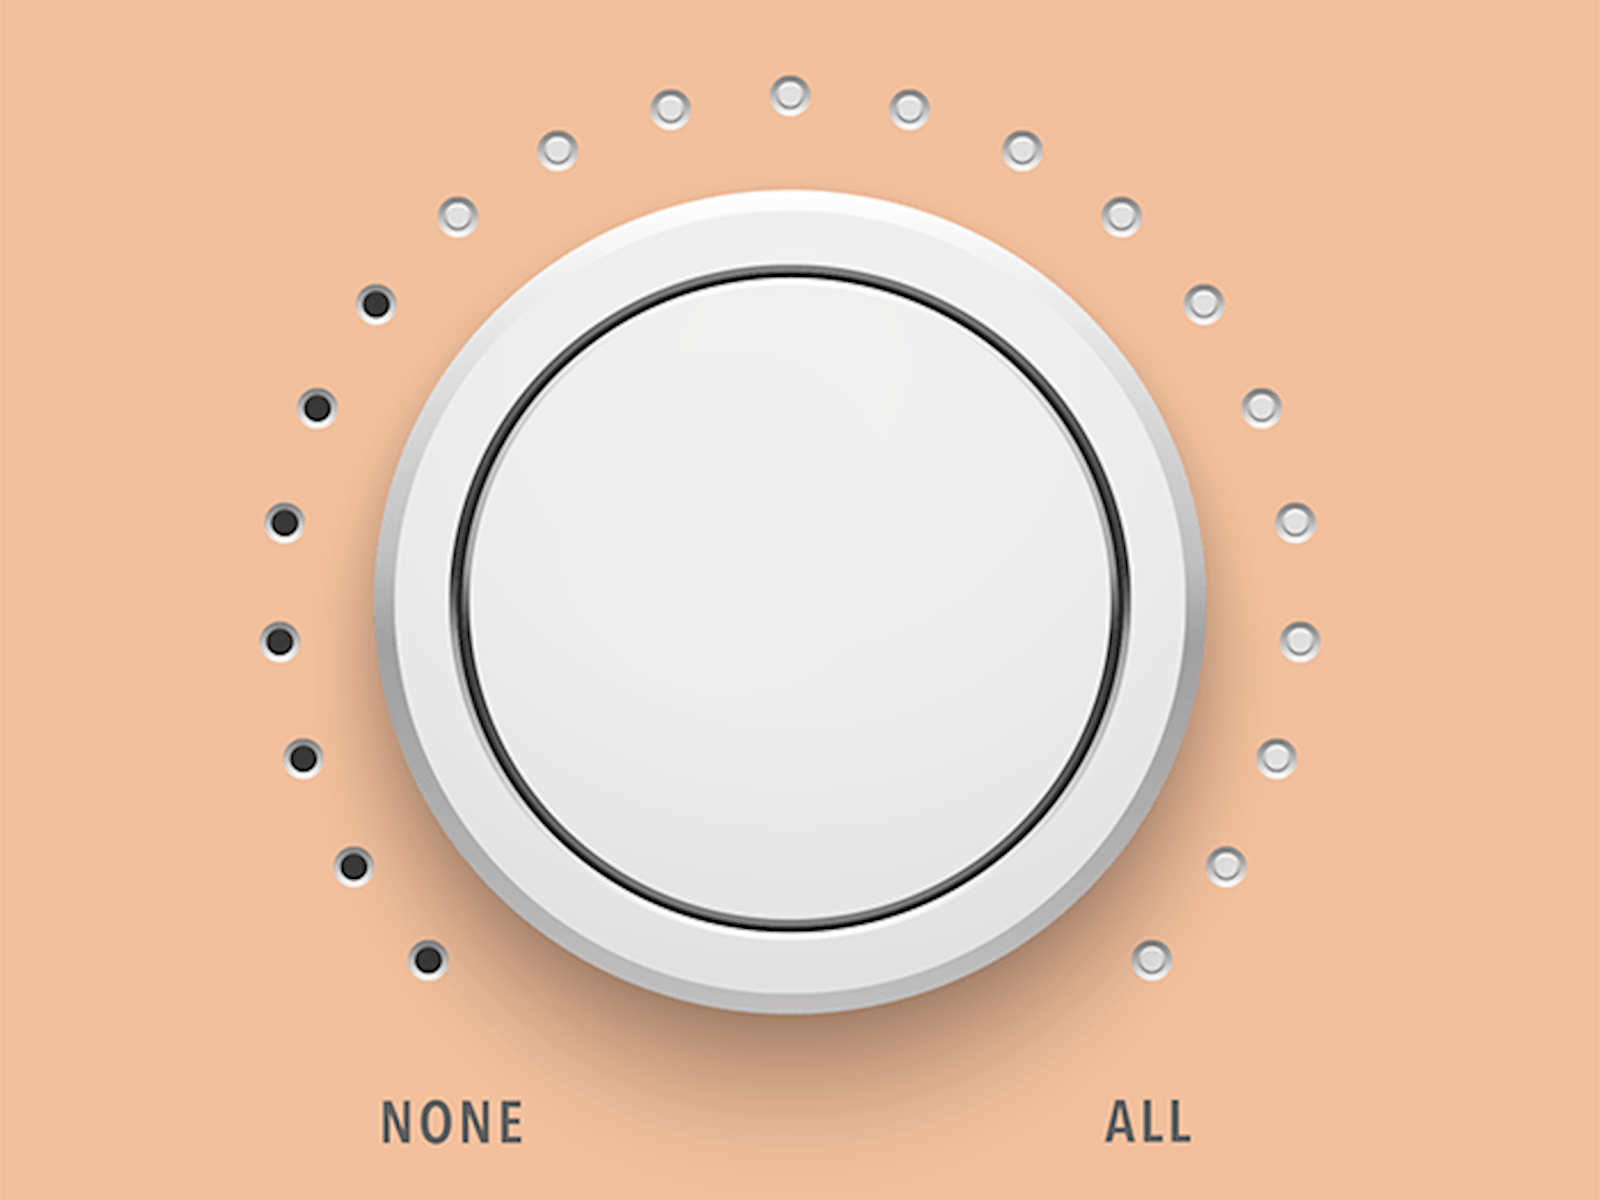 A dial going from 'NONE' to 'ALL'